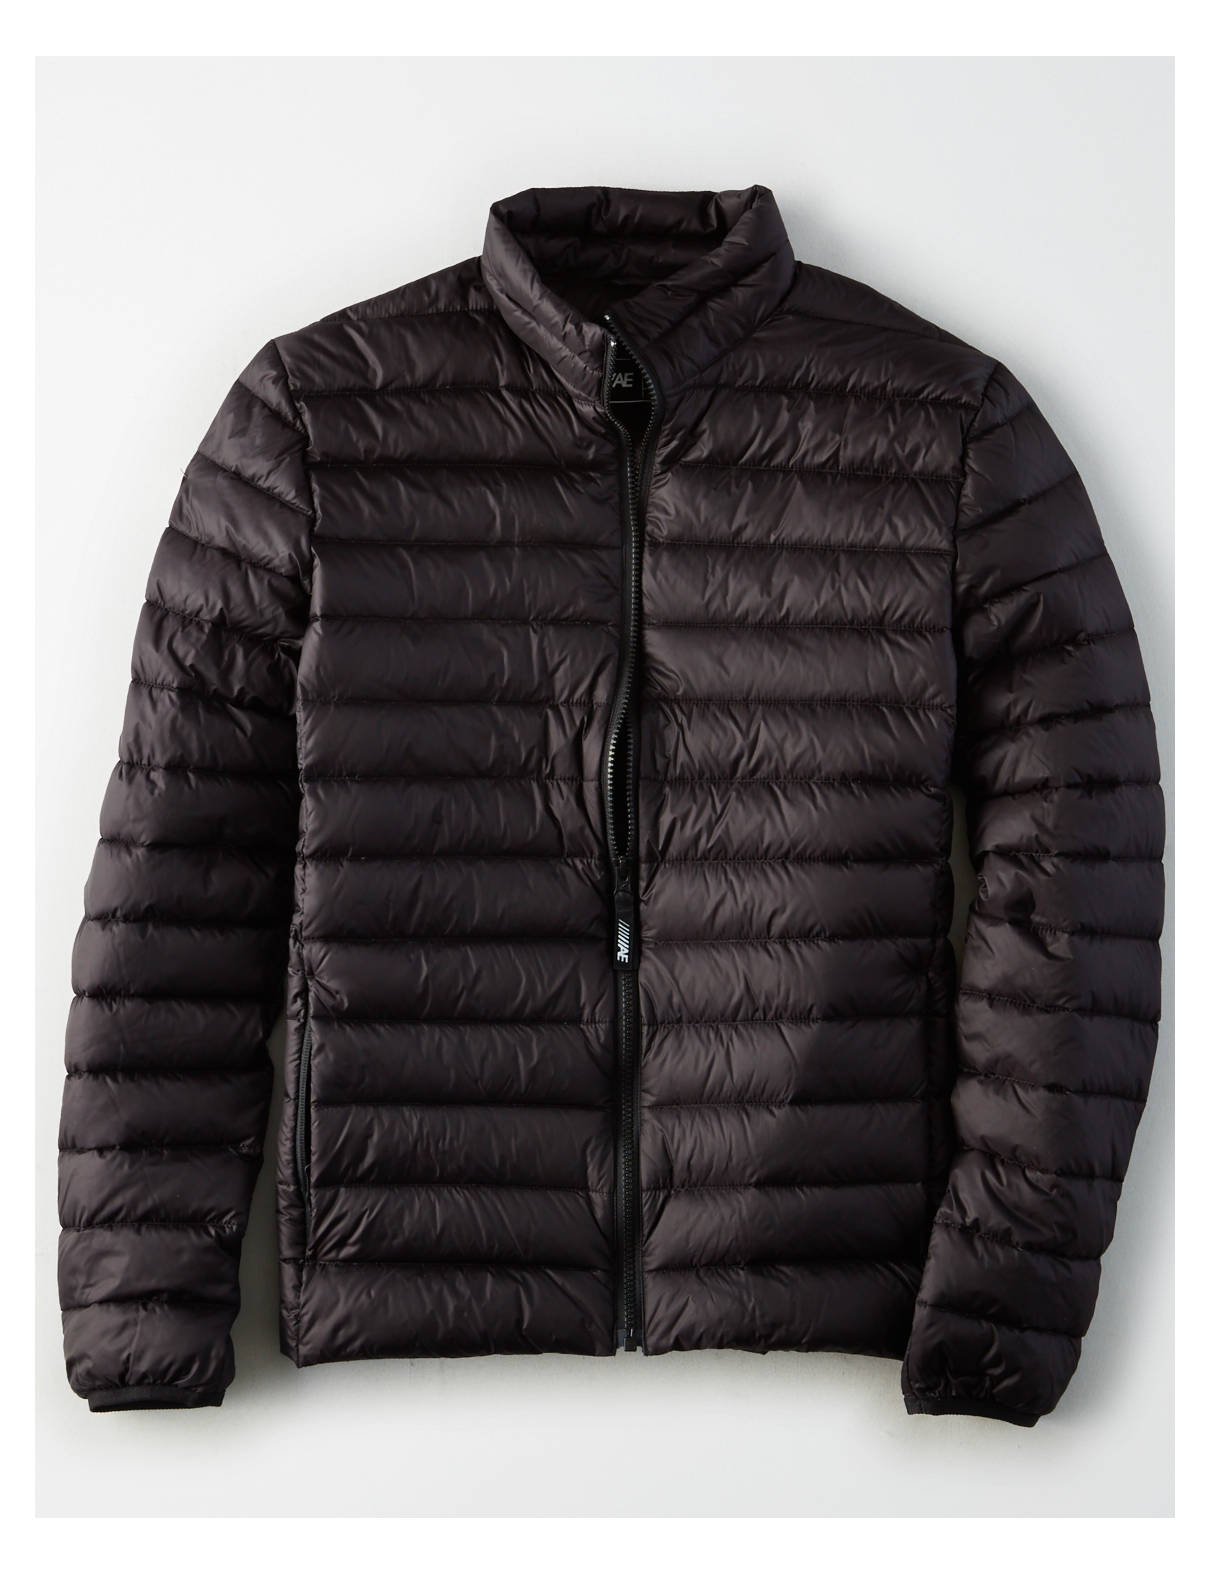 Jackets for Men | American Eagle Outfitters